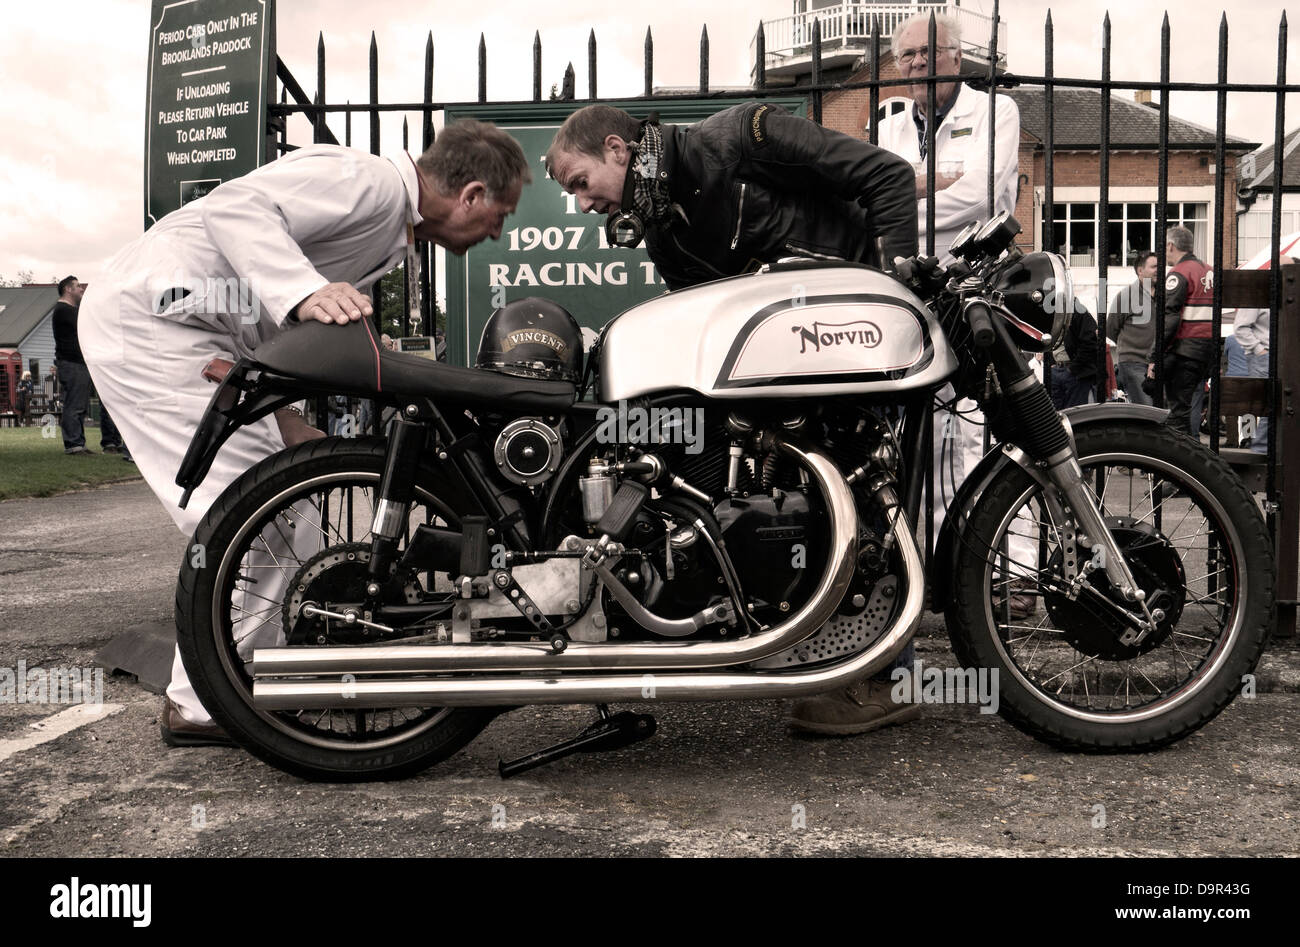 Norvin cafe racer 1960's motorcycle - Stock Image